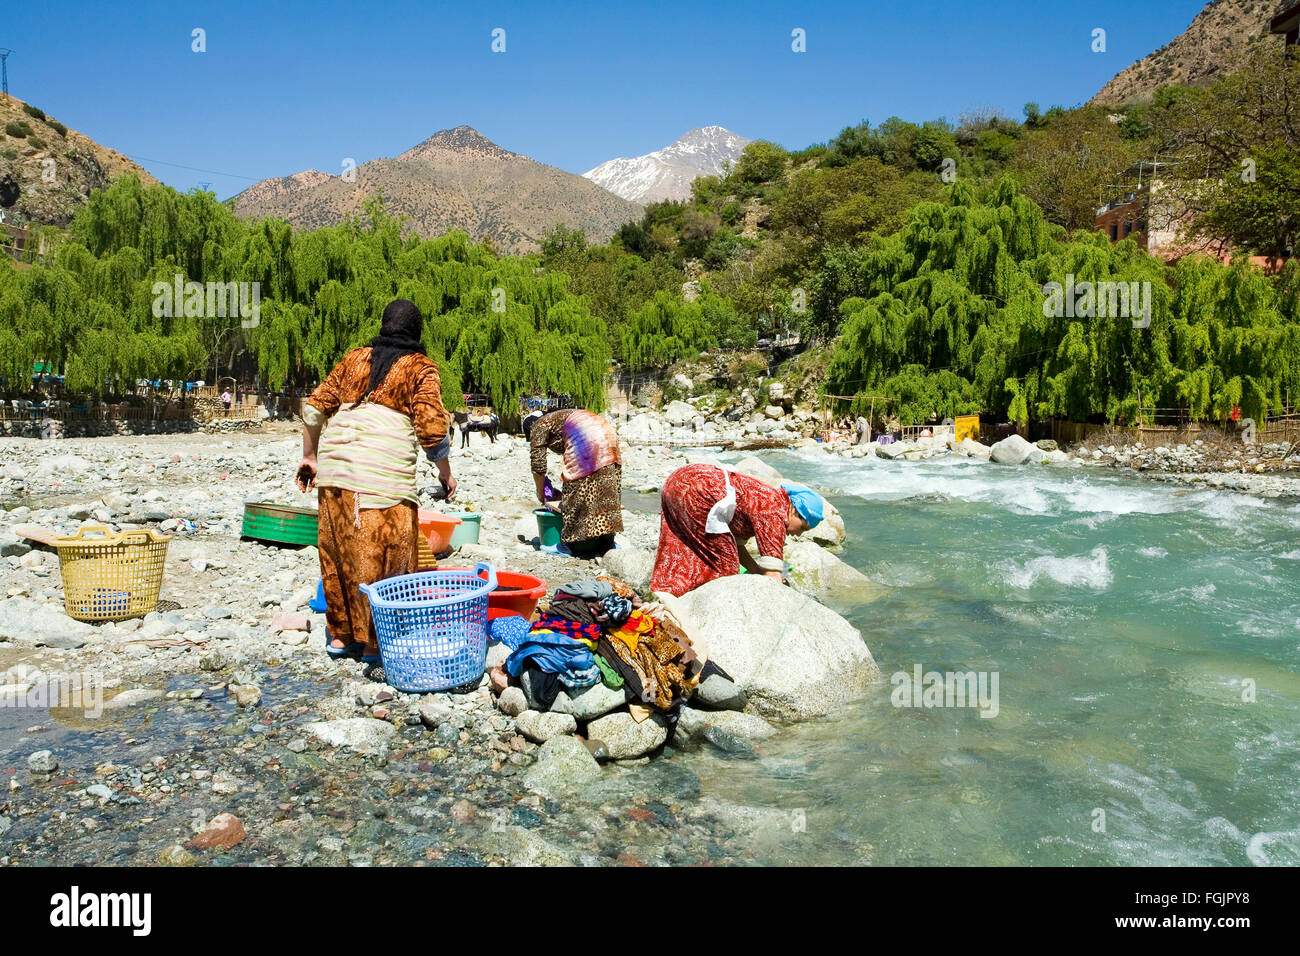 Washing clothes in the river at Setti Fatma, Ourika Valley Morocco - Stock Image